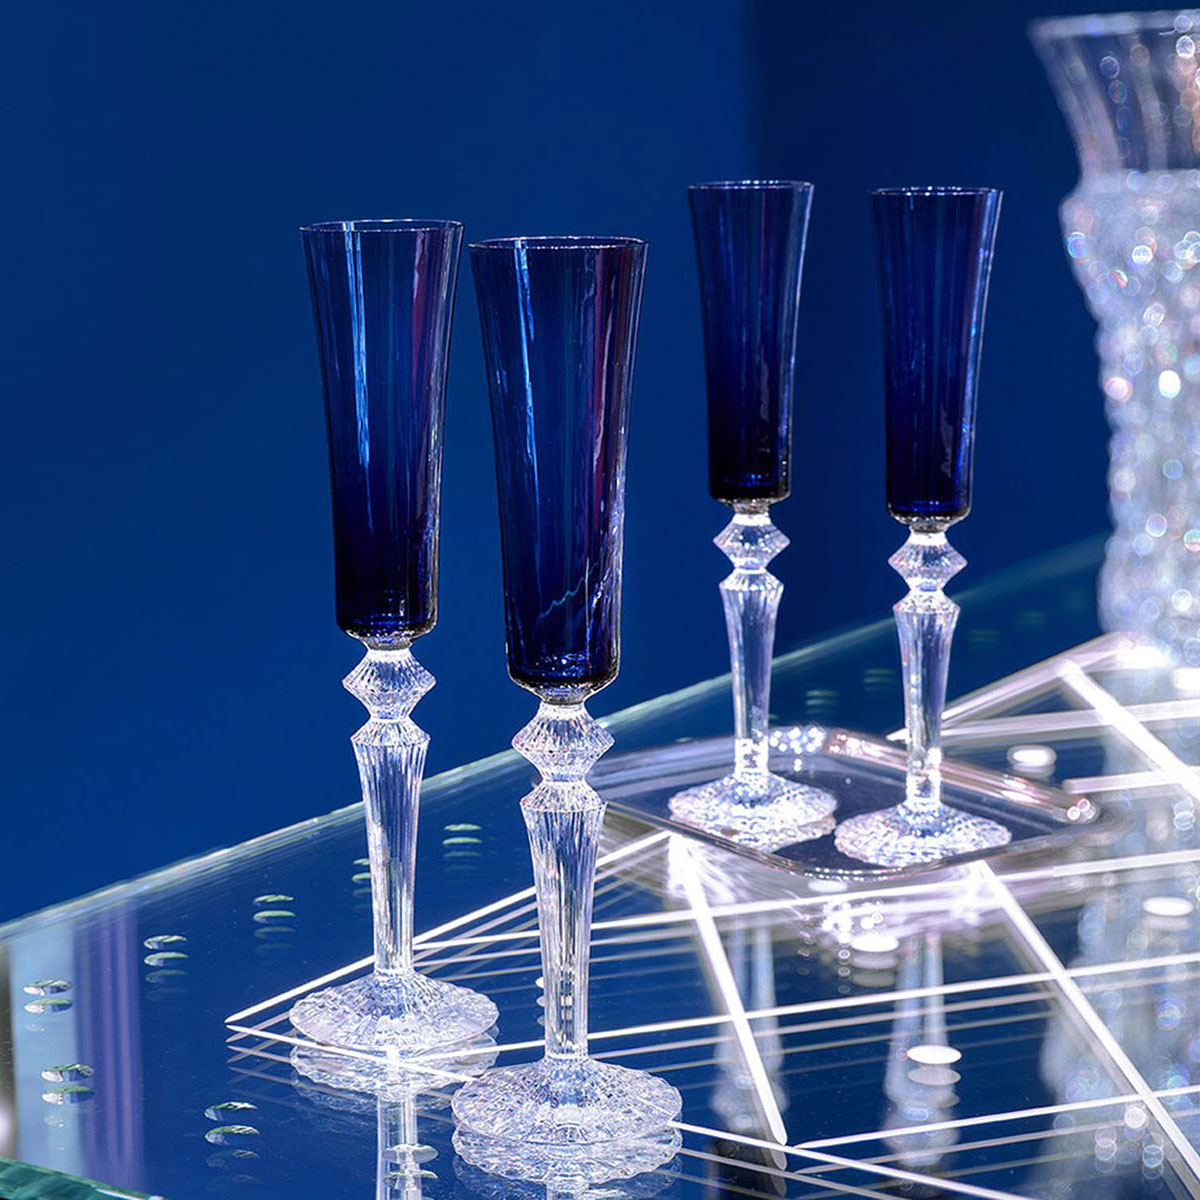 Baccarat Crystal, Mille Nuits Flutissimo Midnight Crystal Flutes, Pair